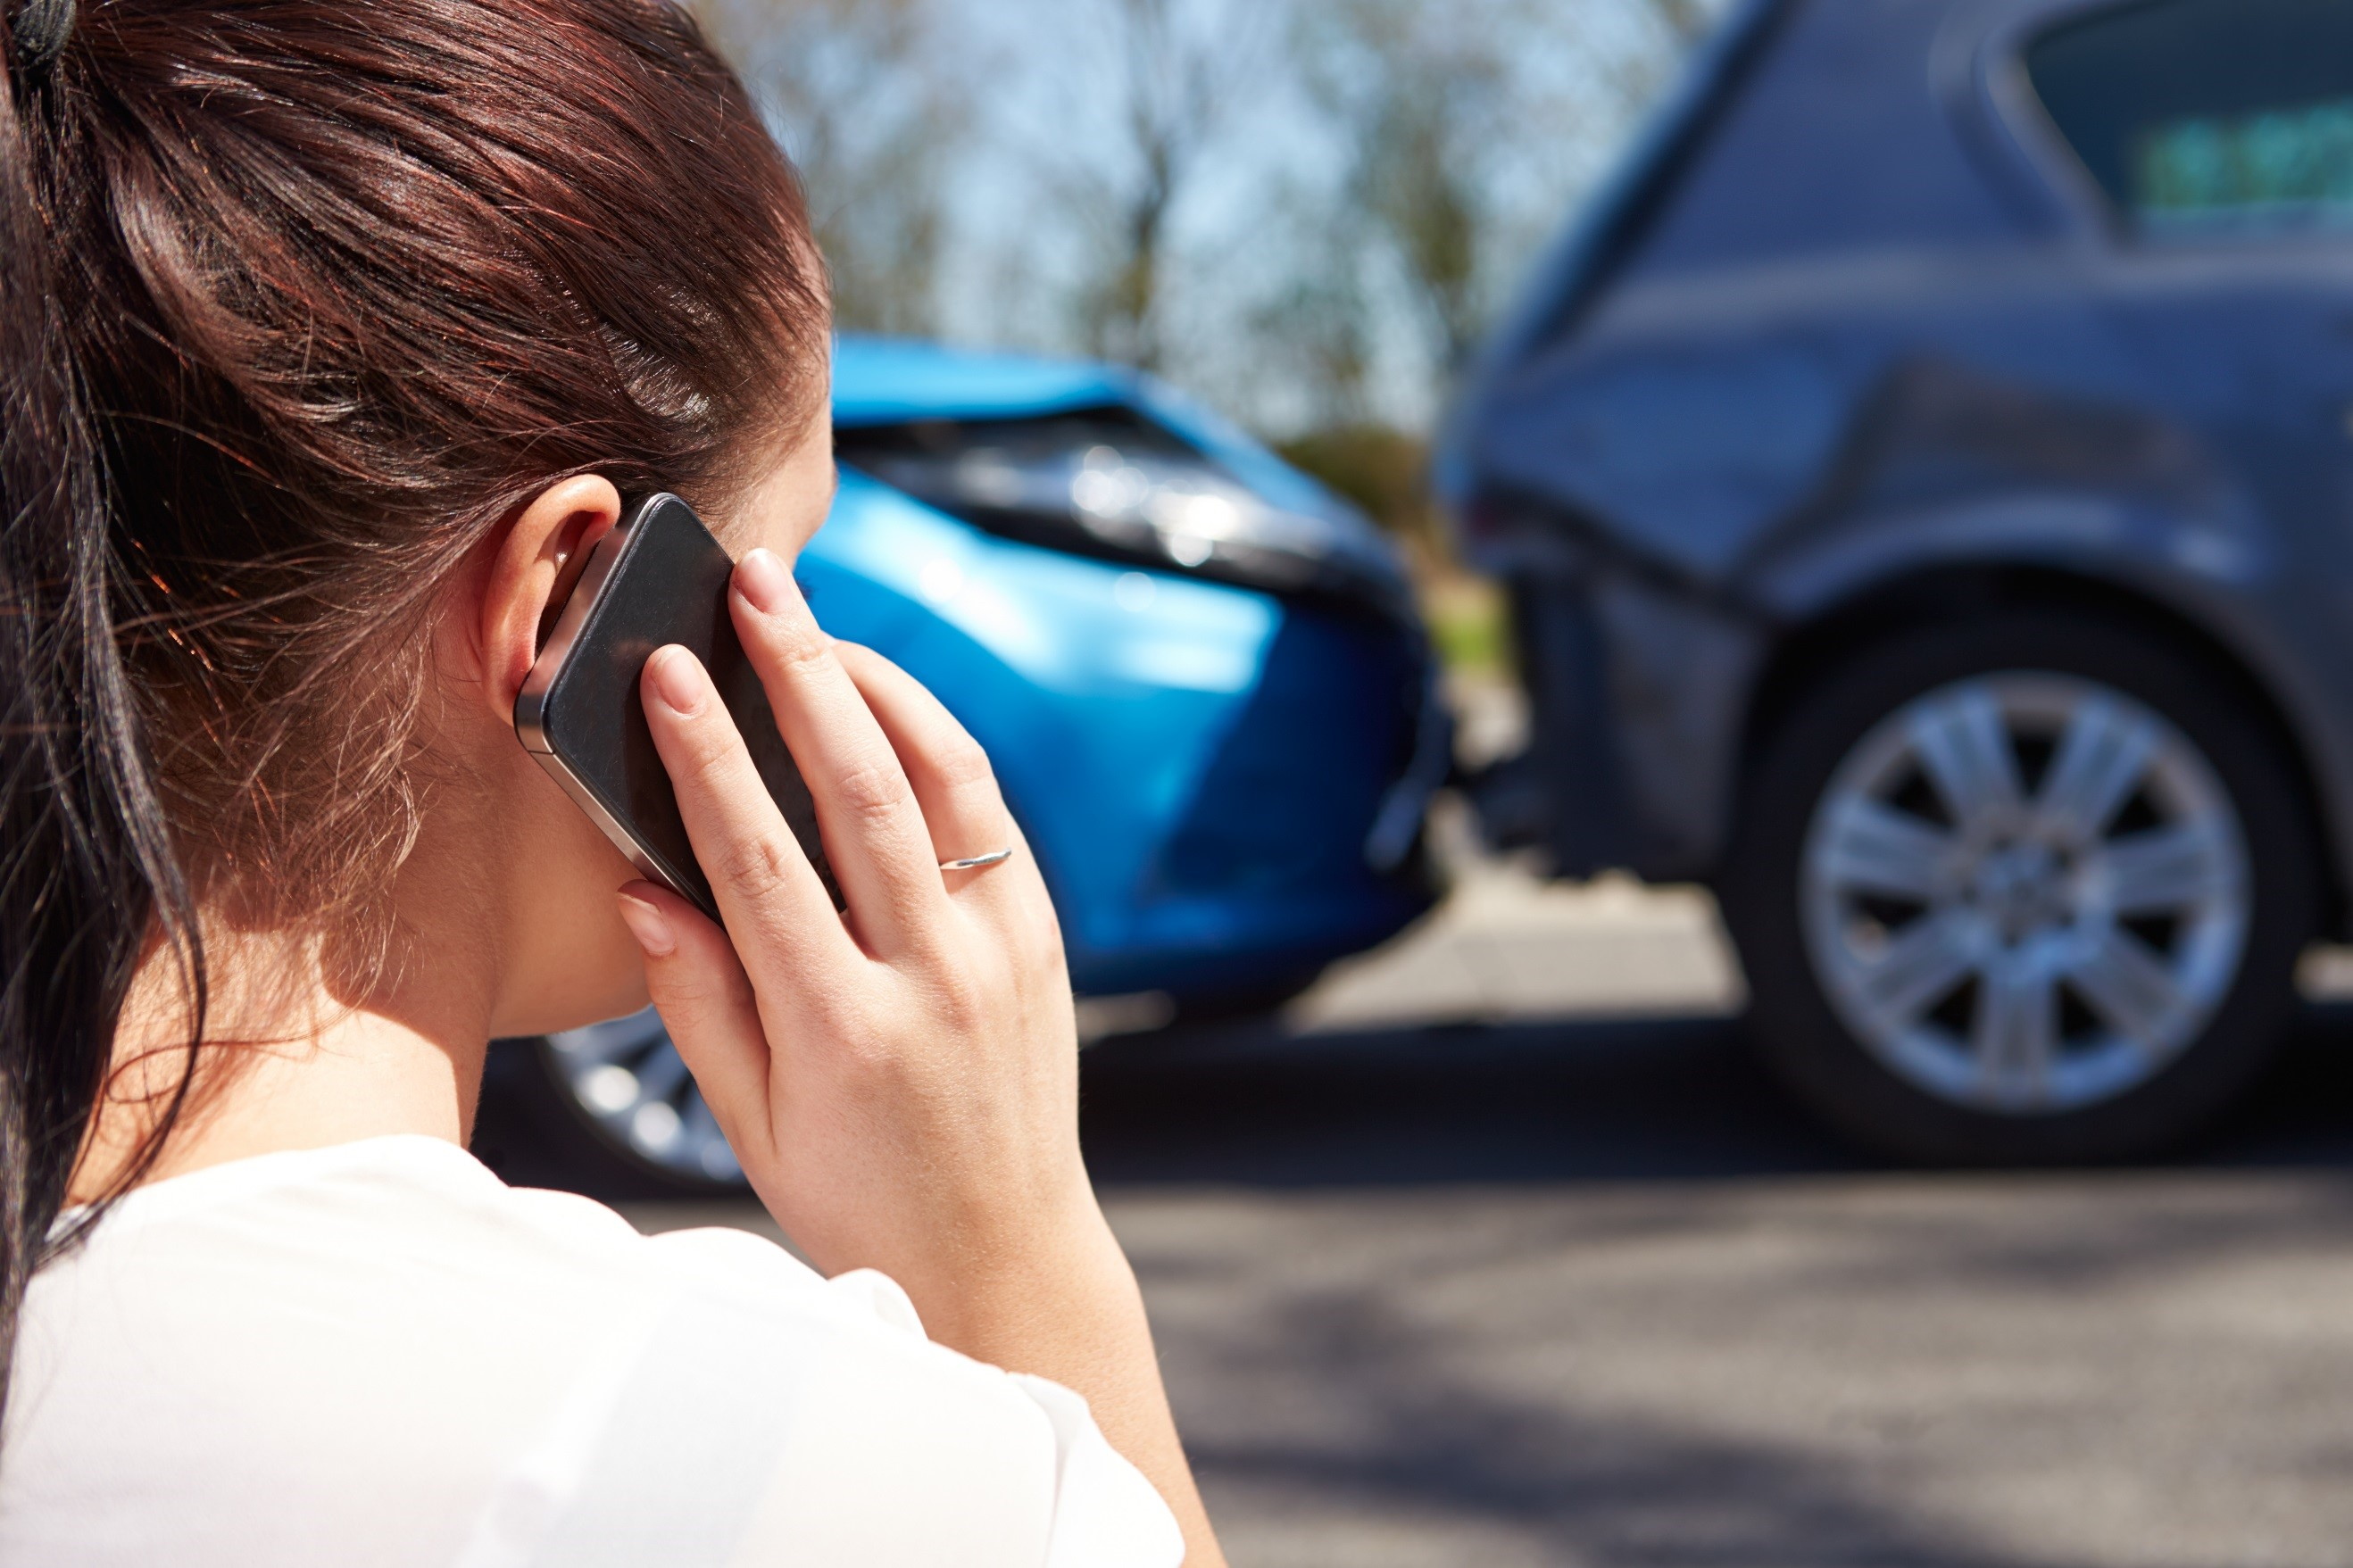 USAA-Member-Community-Auto-Accident-Overseas1small.jpg